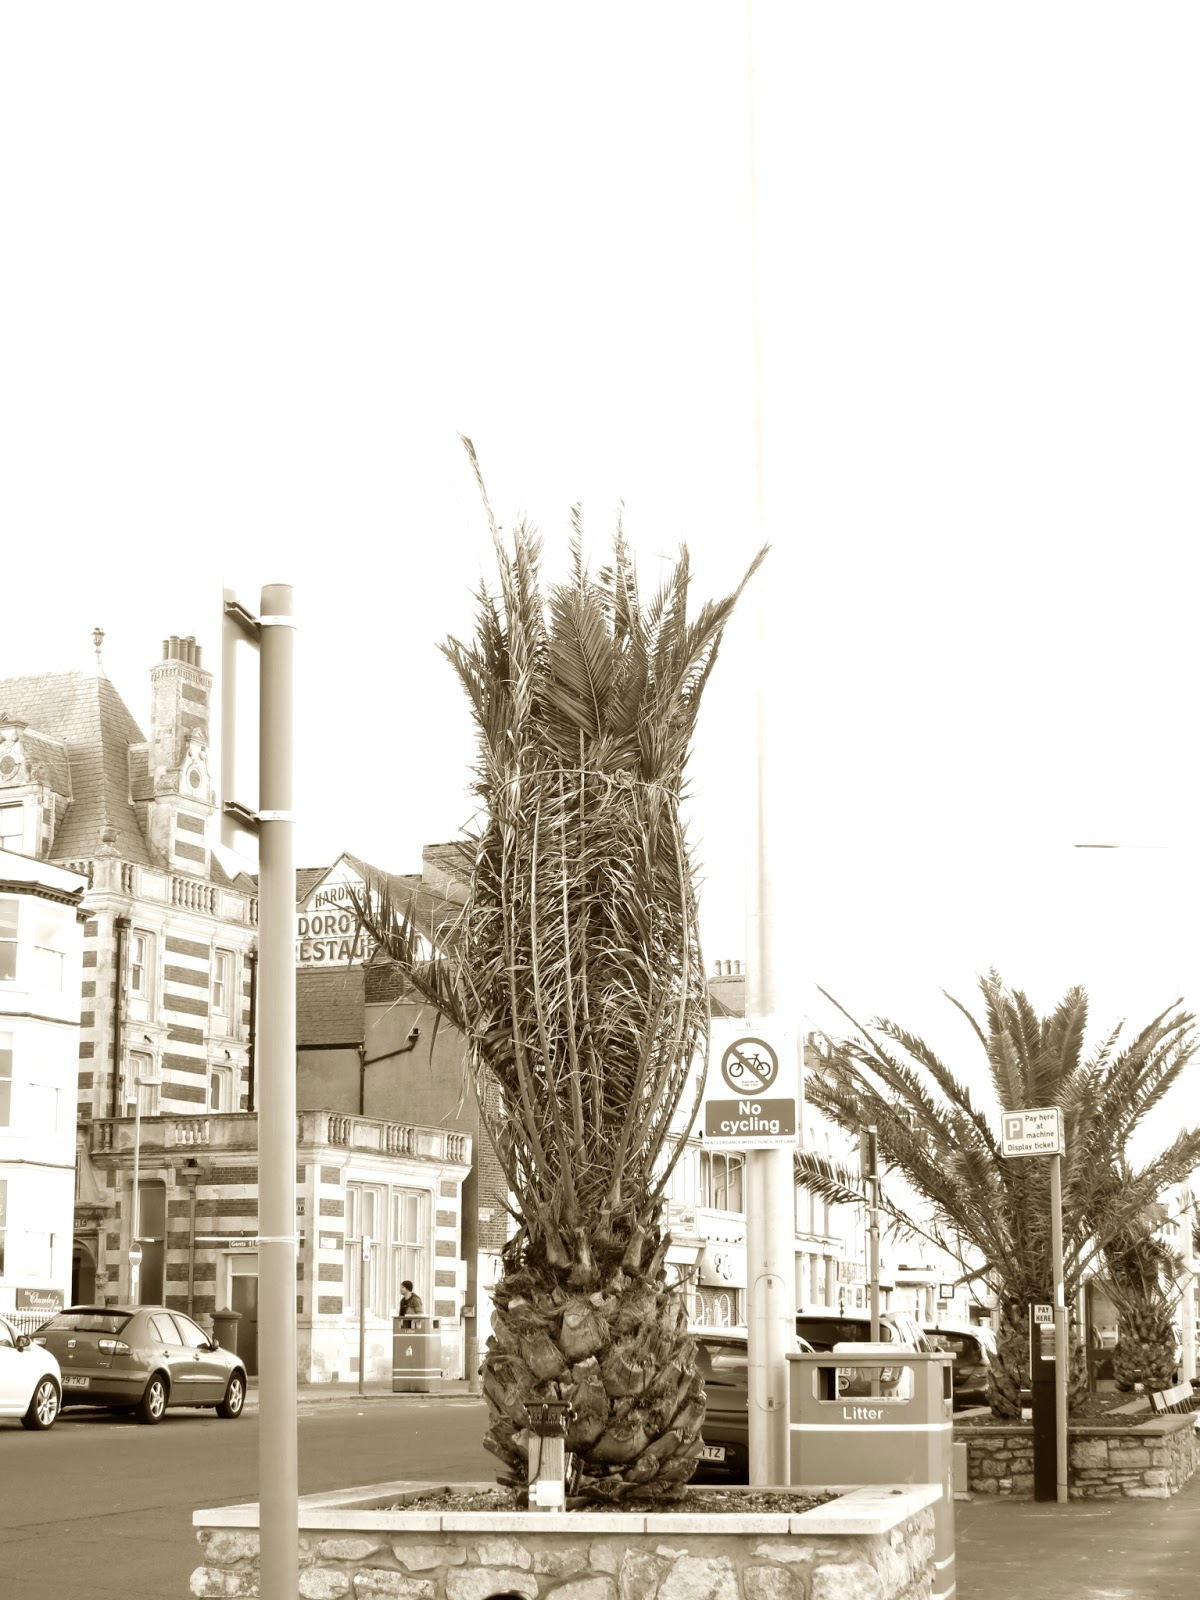 Palms or ferns tied up for winter on Weymouth Promenade. (Esplanade)